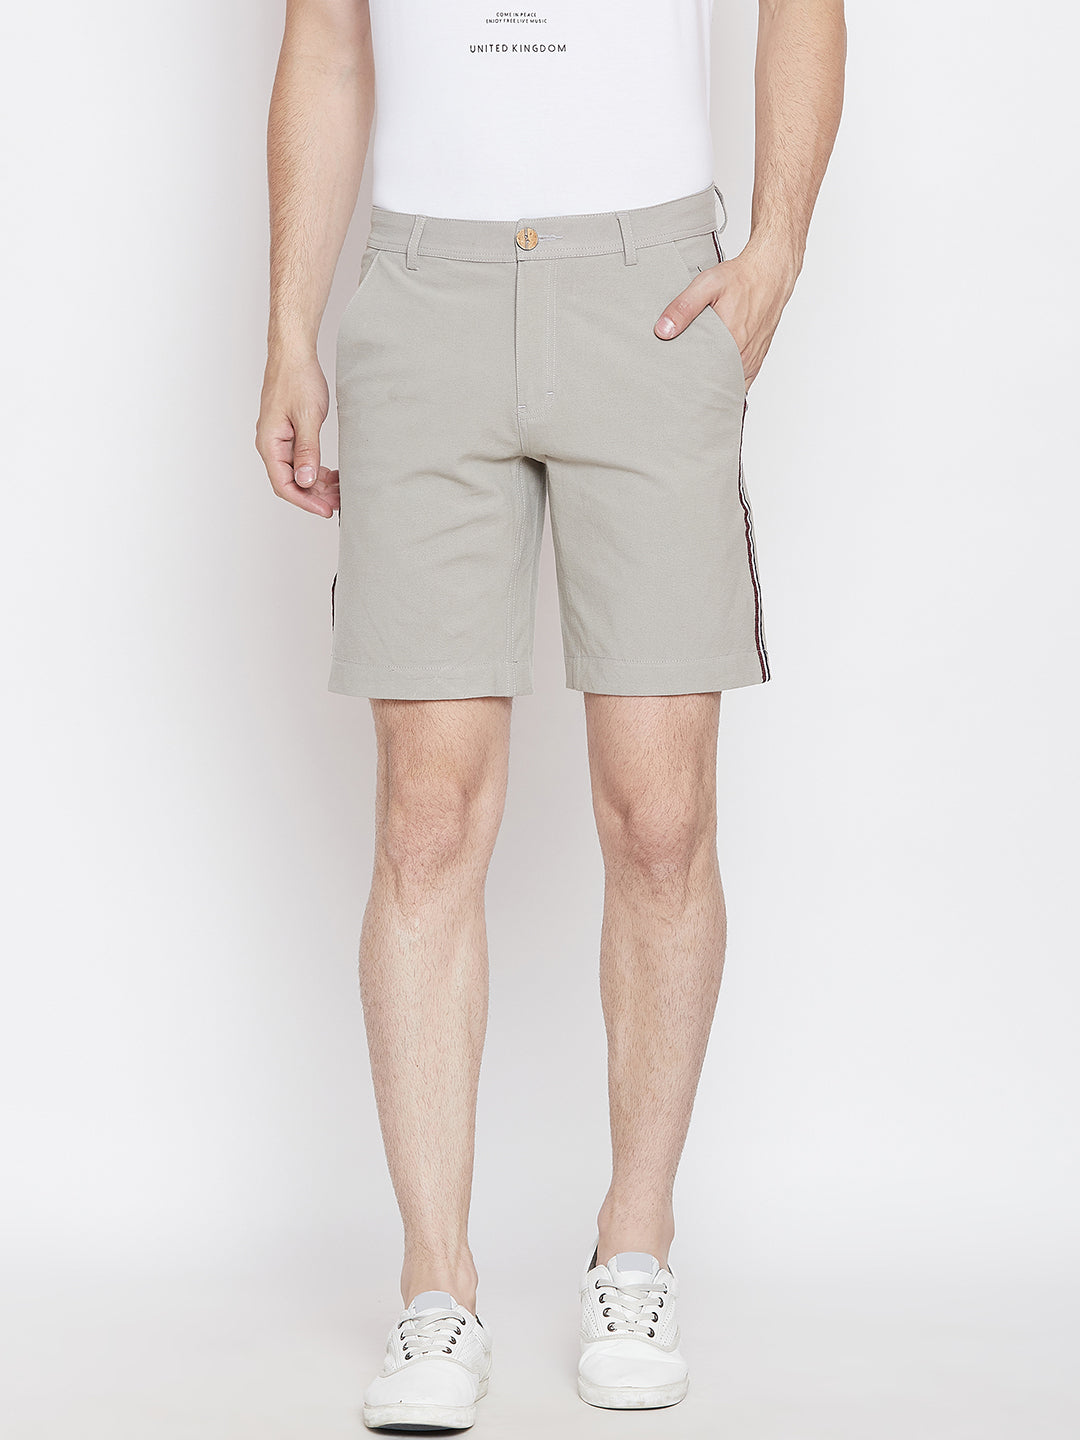 JUMP USA Men Grey Solid Regular Fit Chino Shorts - JUMP USA